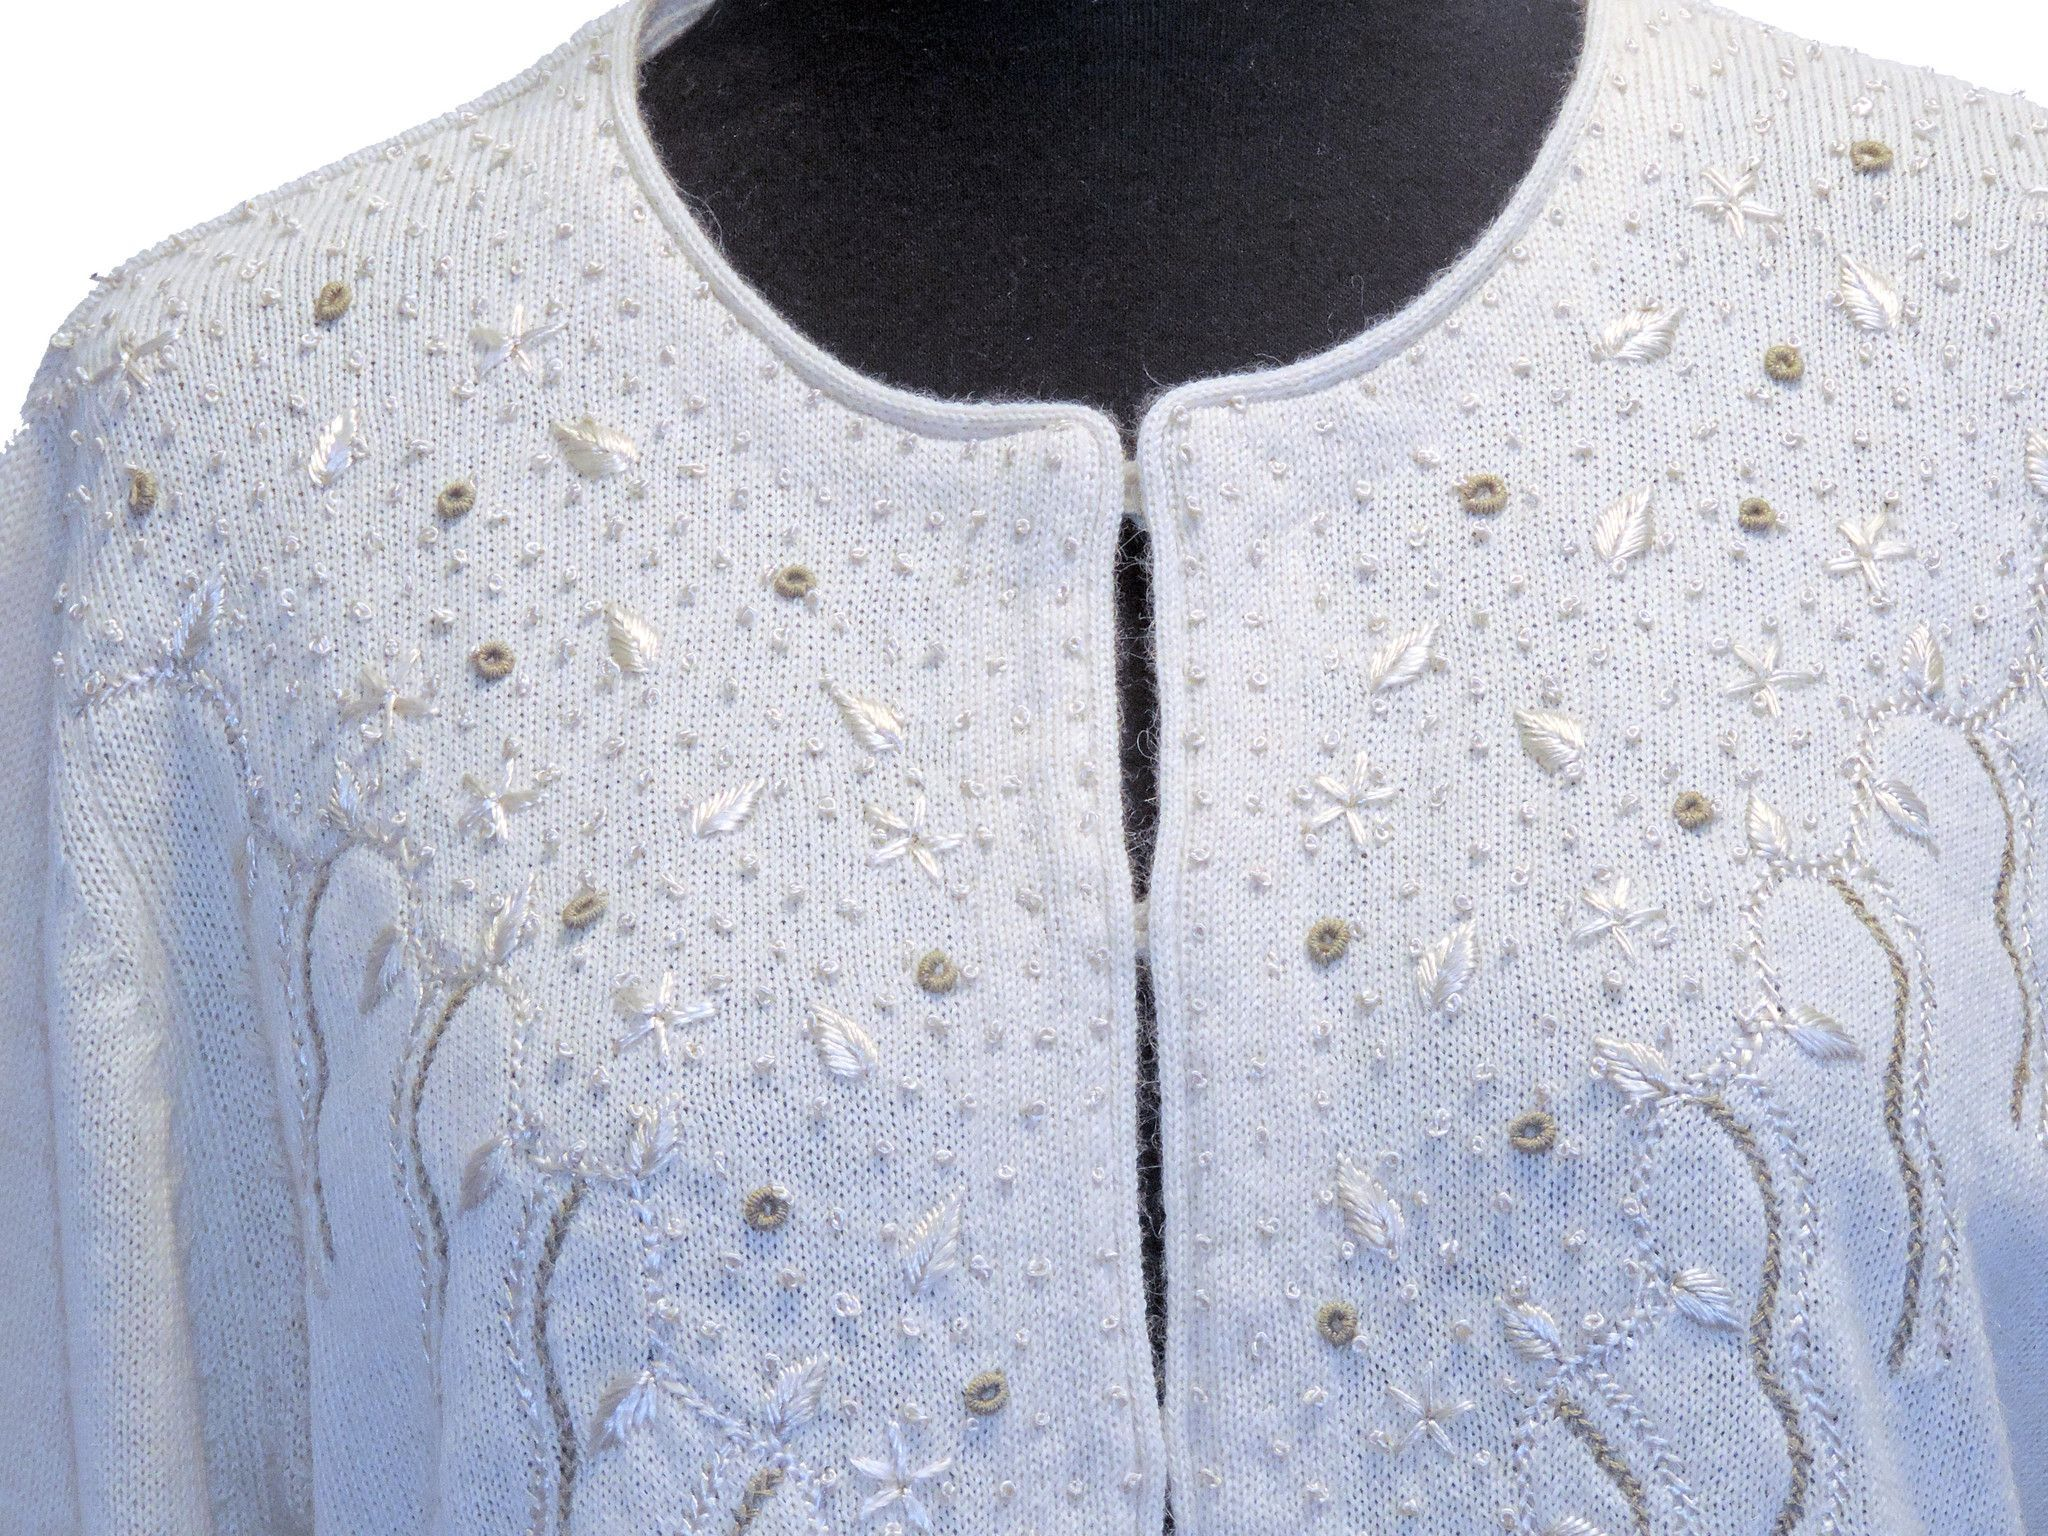 7a1e4261c 100% Baby Alpaca Cardigan with Silk Embroidery - Natural White ...